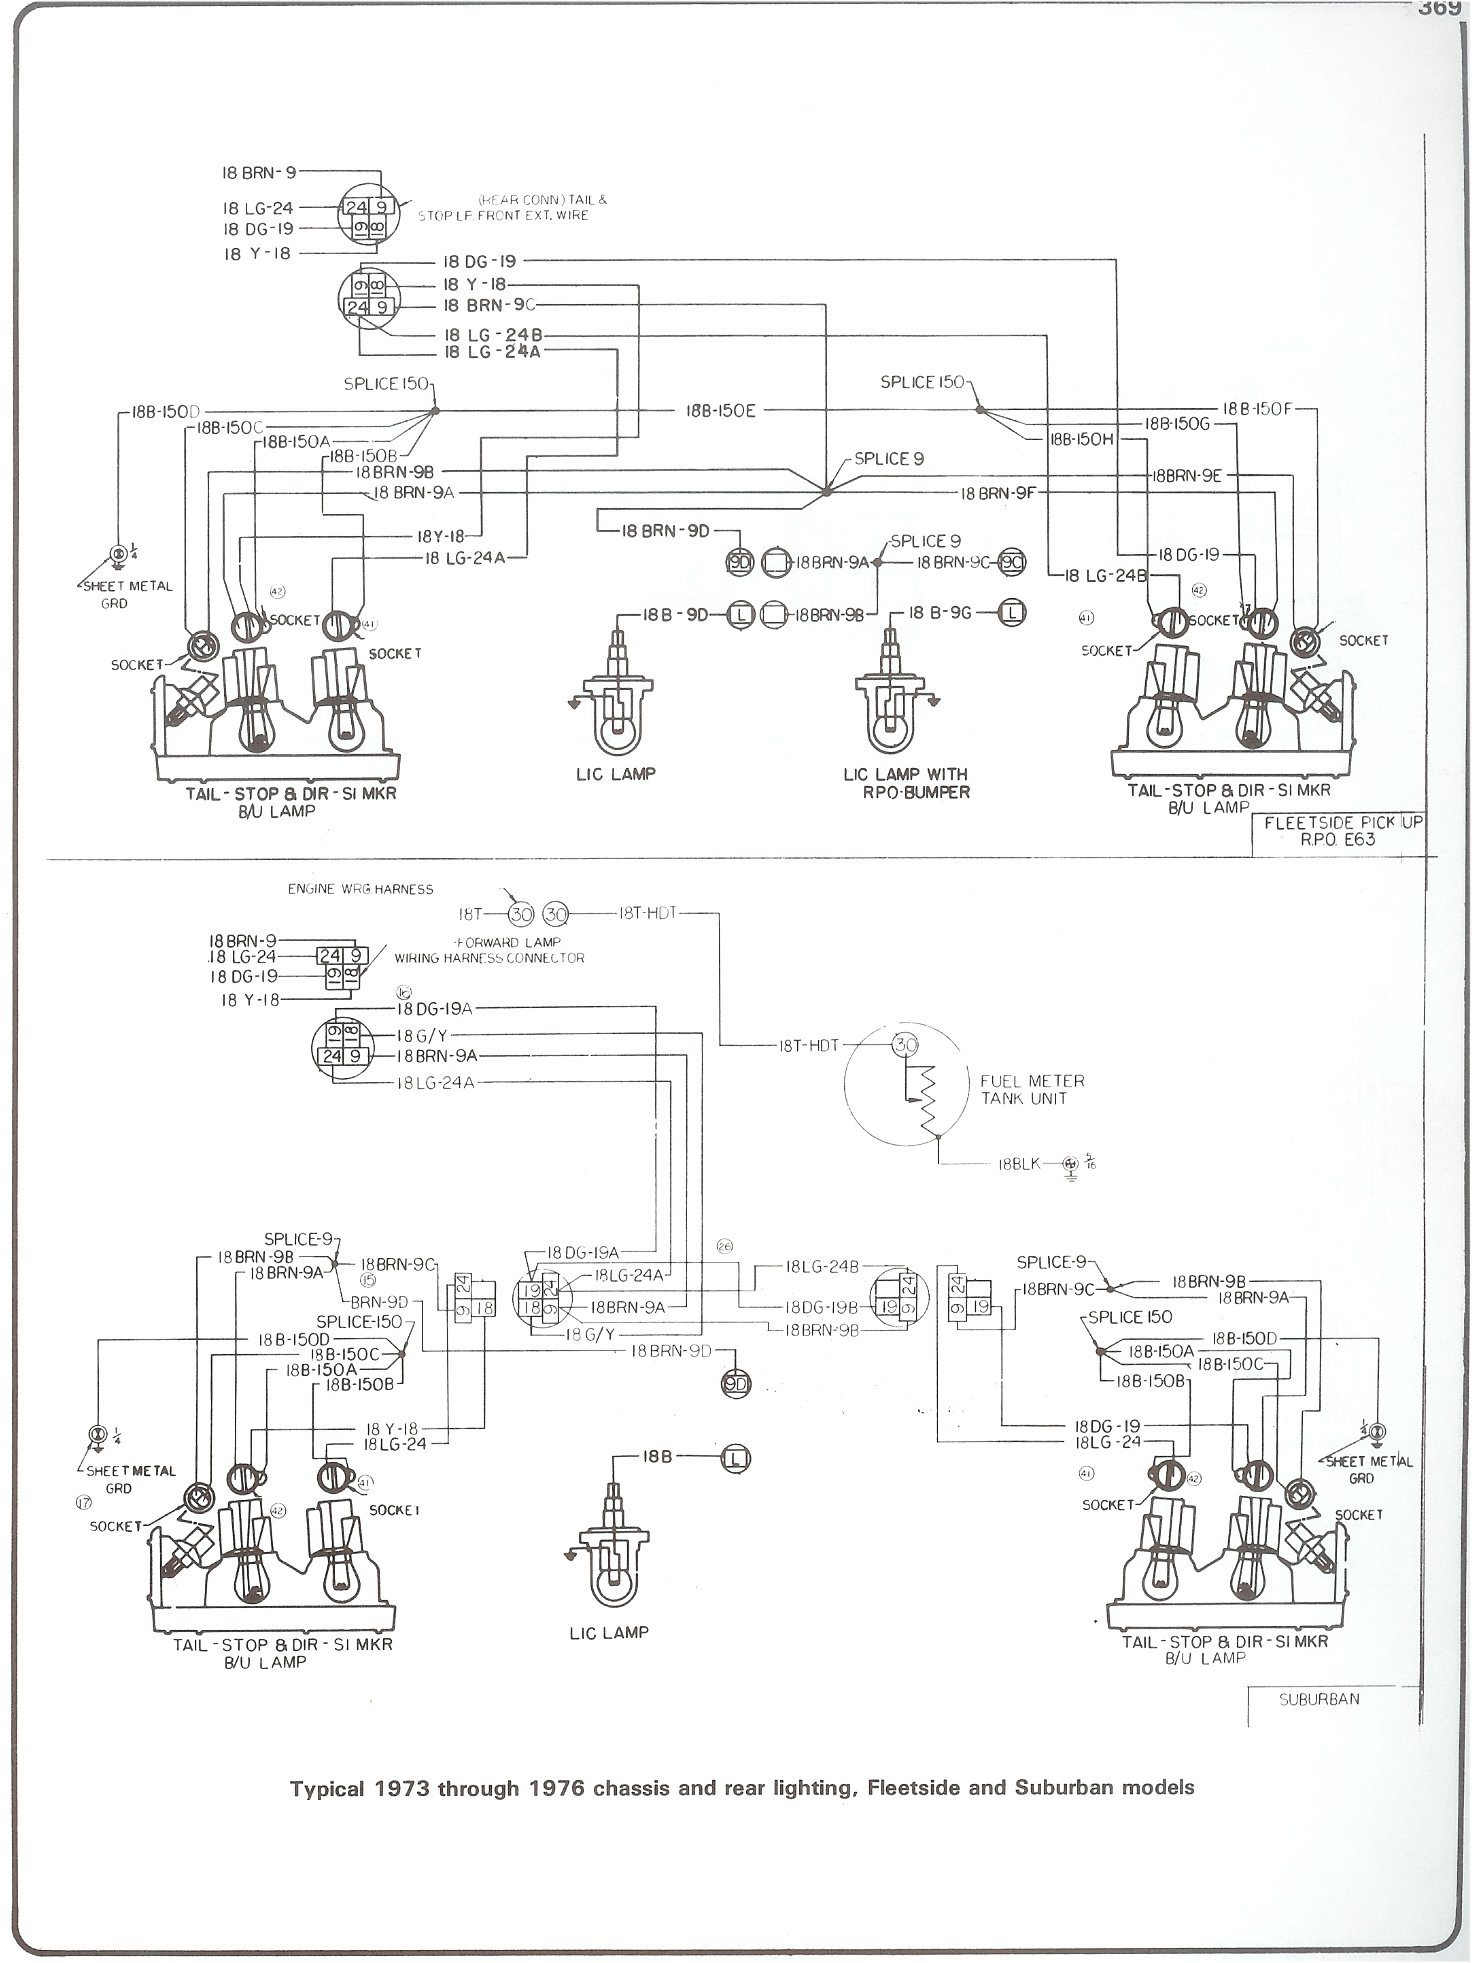 complete 73 87 wiring diagrams rh forum 73 87chevytrucks com 93 Chevy Suburban Wiring Diagram 89 Chevy Suburban Wiring Diagram